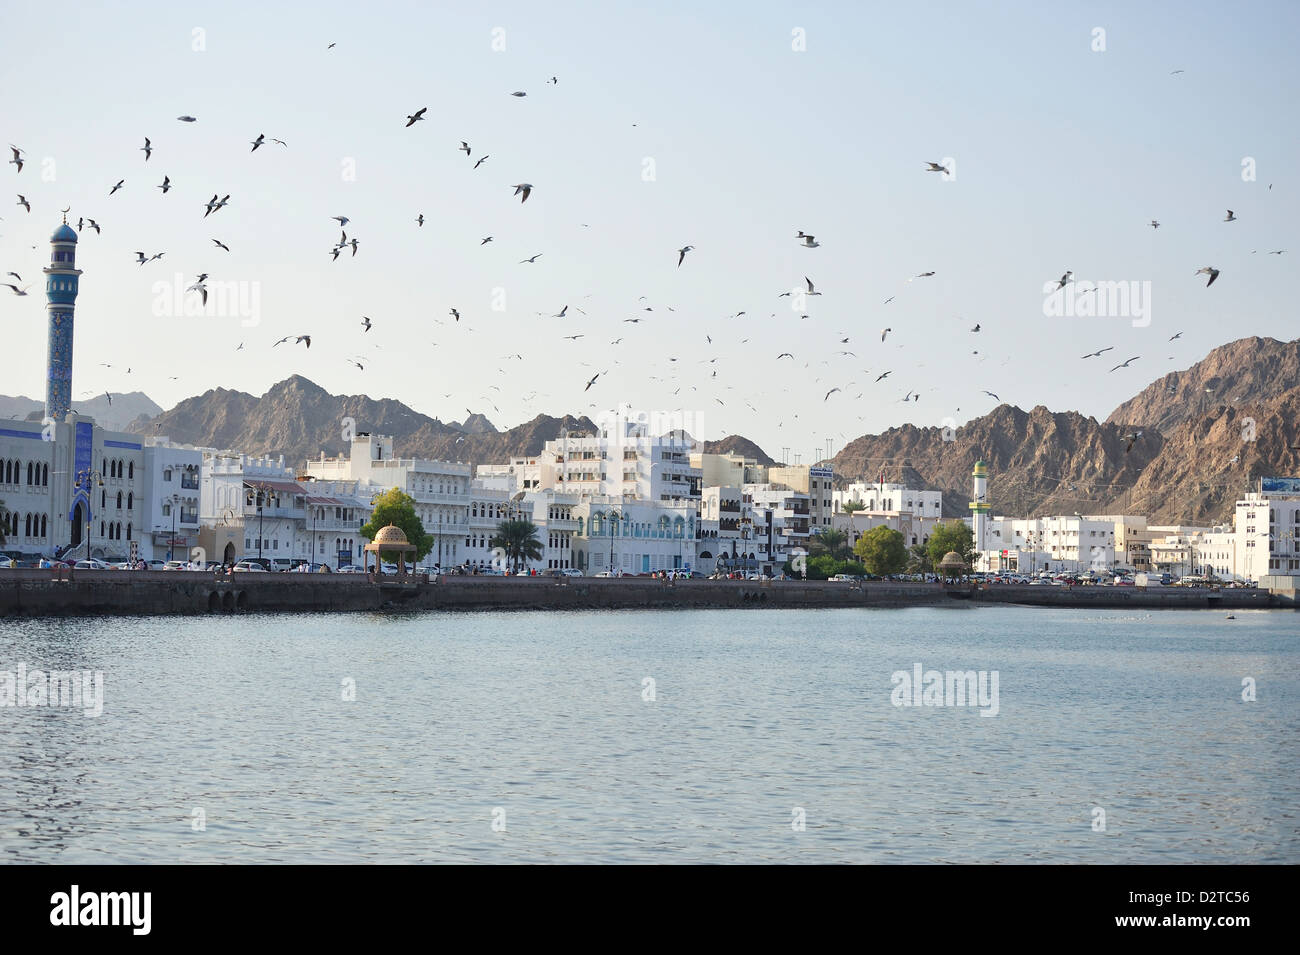 A flock of seagulls with stark mountains and the Corniche in the background; Mutrah; Muscat, Oman. - Stock Image